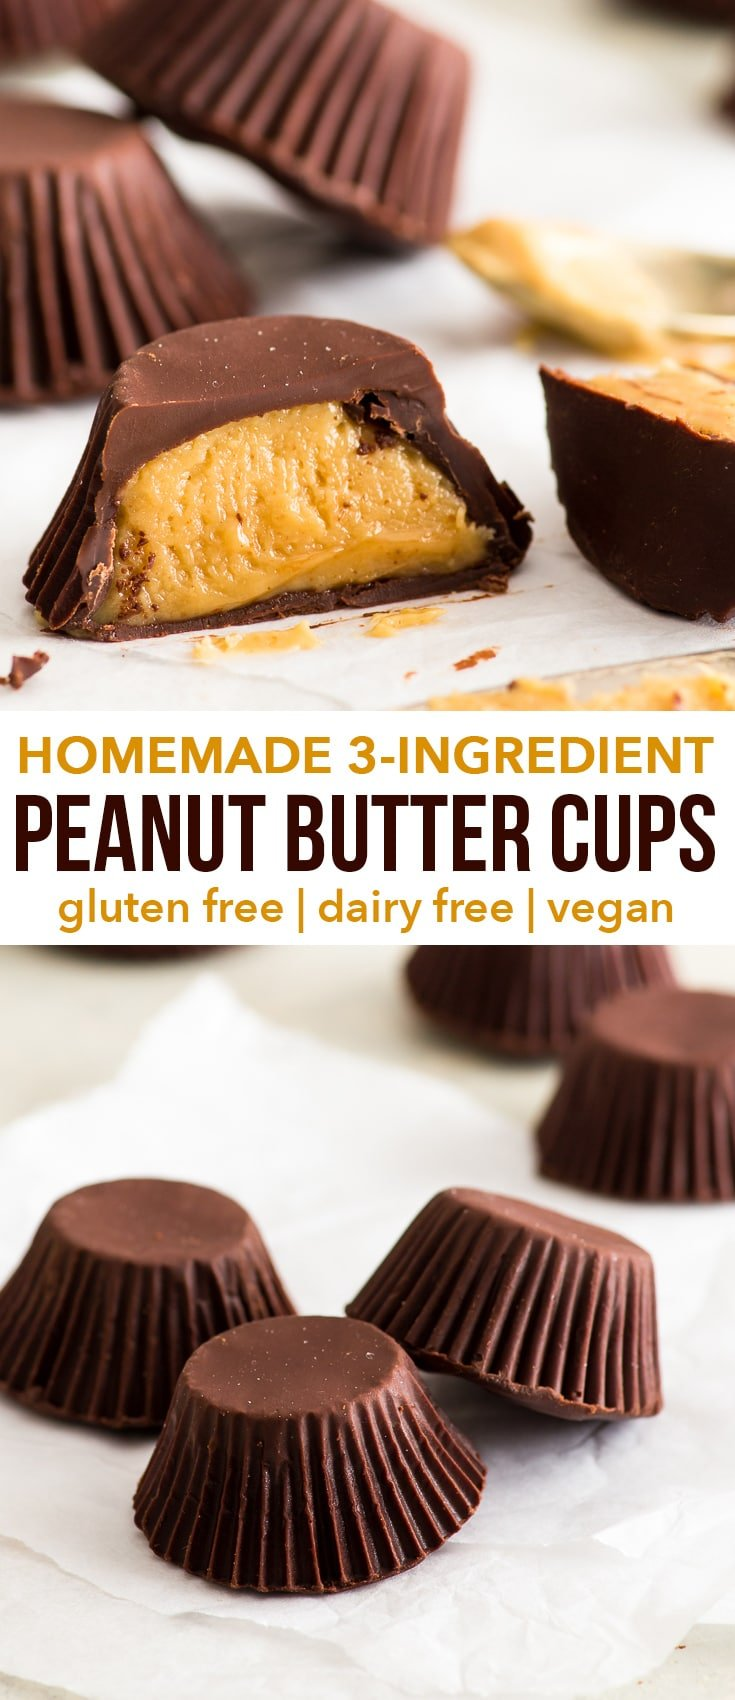 3-Ingredient Homemade Peanut Butter Cups {gluten, dairy, egg & soy free, vegan} - These homemade peanut butter cups are a brilliant, healthier alternative to everyone's favourite store-bought treat – and they only contain 3 ingredients! With a delicious dark chocolate shell and a fudgy sweet-salty peanut butter filling. Gluten free dessert recipe. Easy vegan recipe. Vegan dessert. Sweet snack idea. Healthy dessert. Chocolate recipe. #peanutbutter #chocolate #vegan #glutenfree #recipe